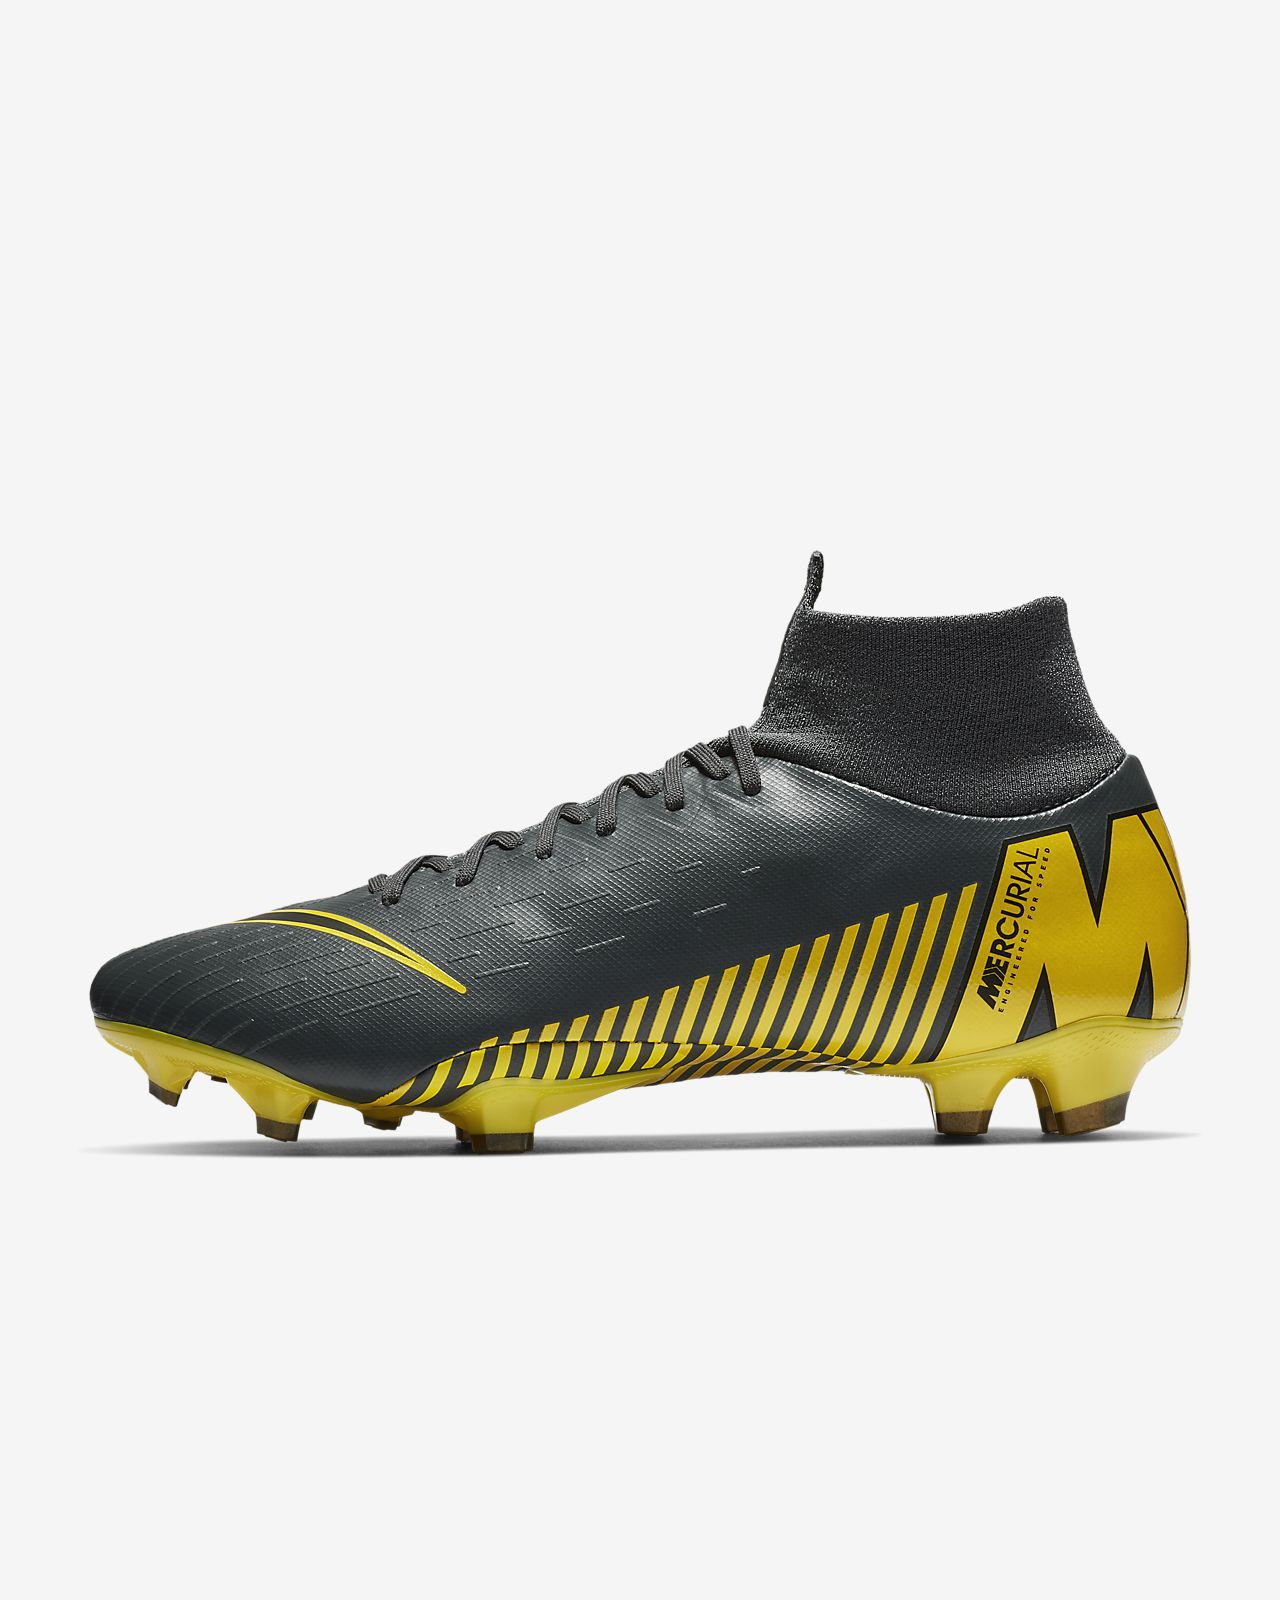 new products 81254 8c3c0 ... Nike Superfly 6 Pro FG Firm-Ground Football Boot